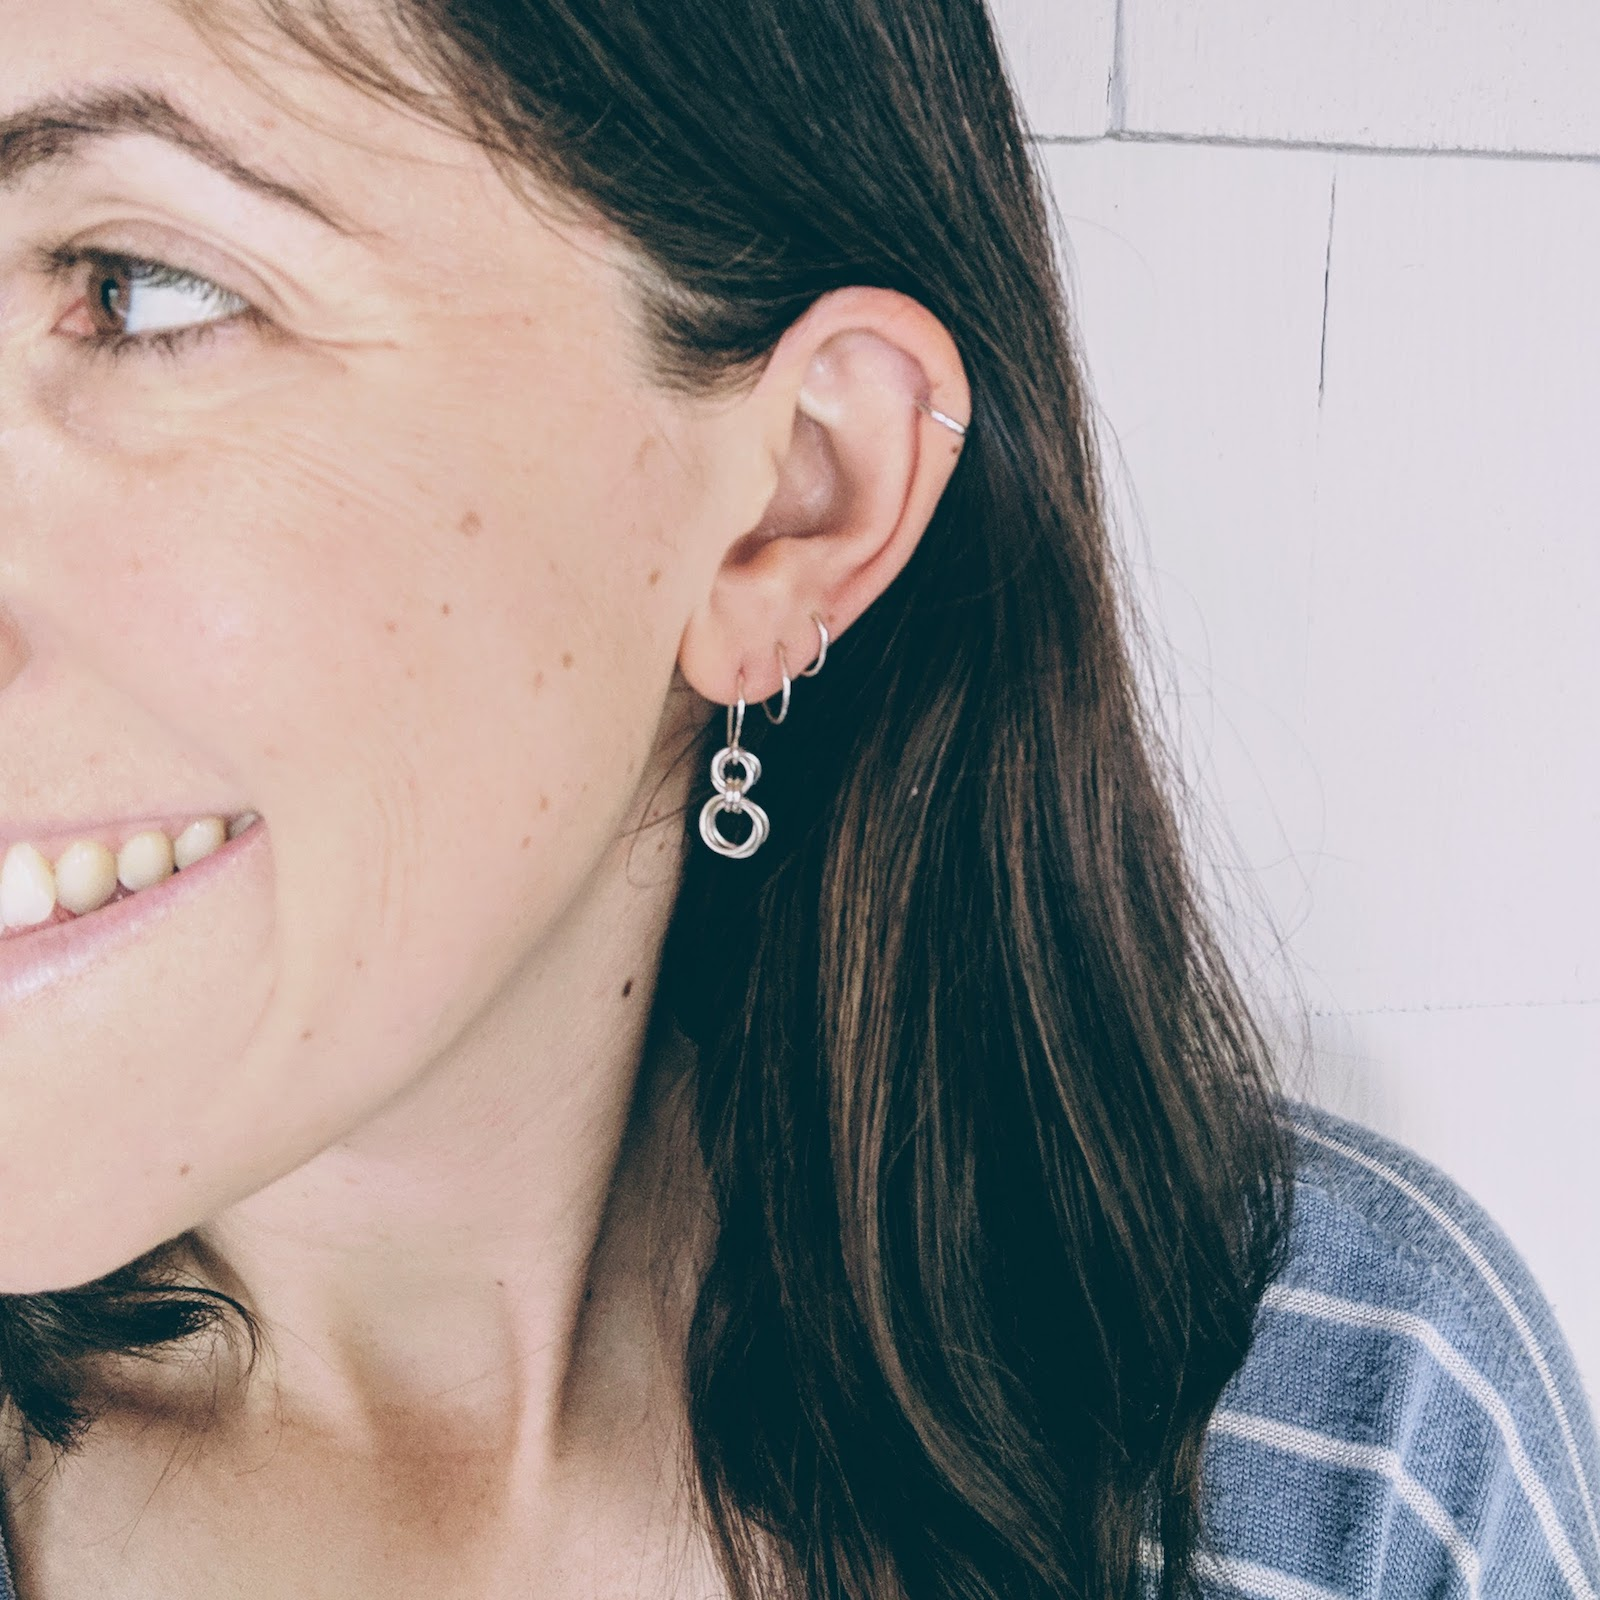 Woman wearing sterling silver earrings